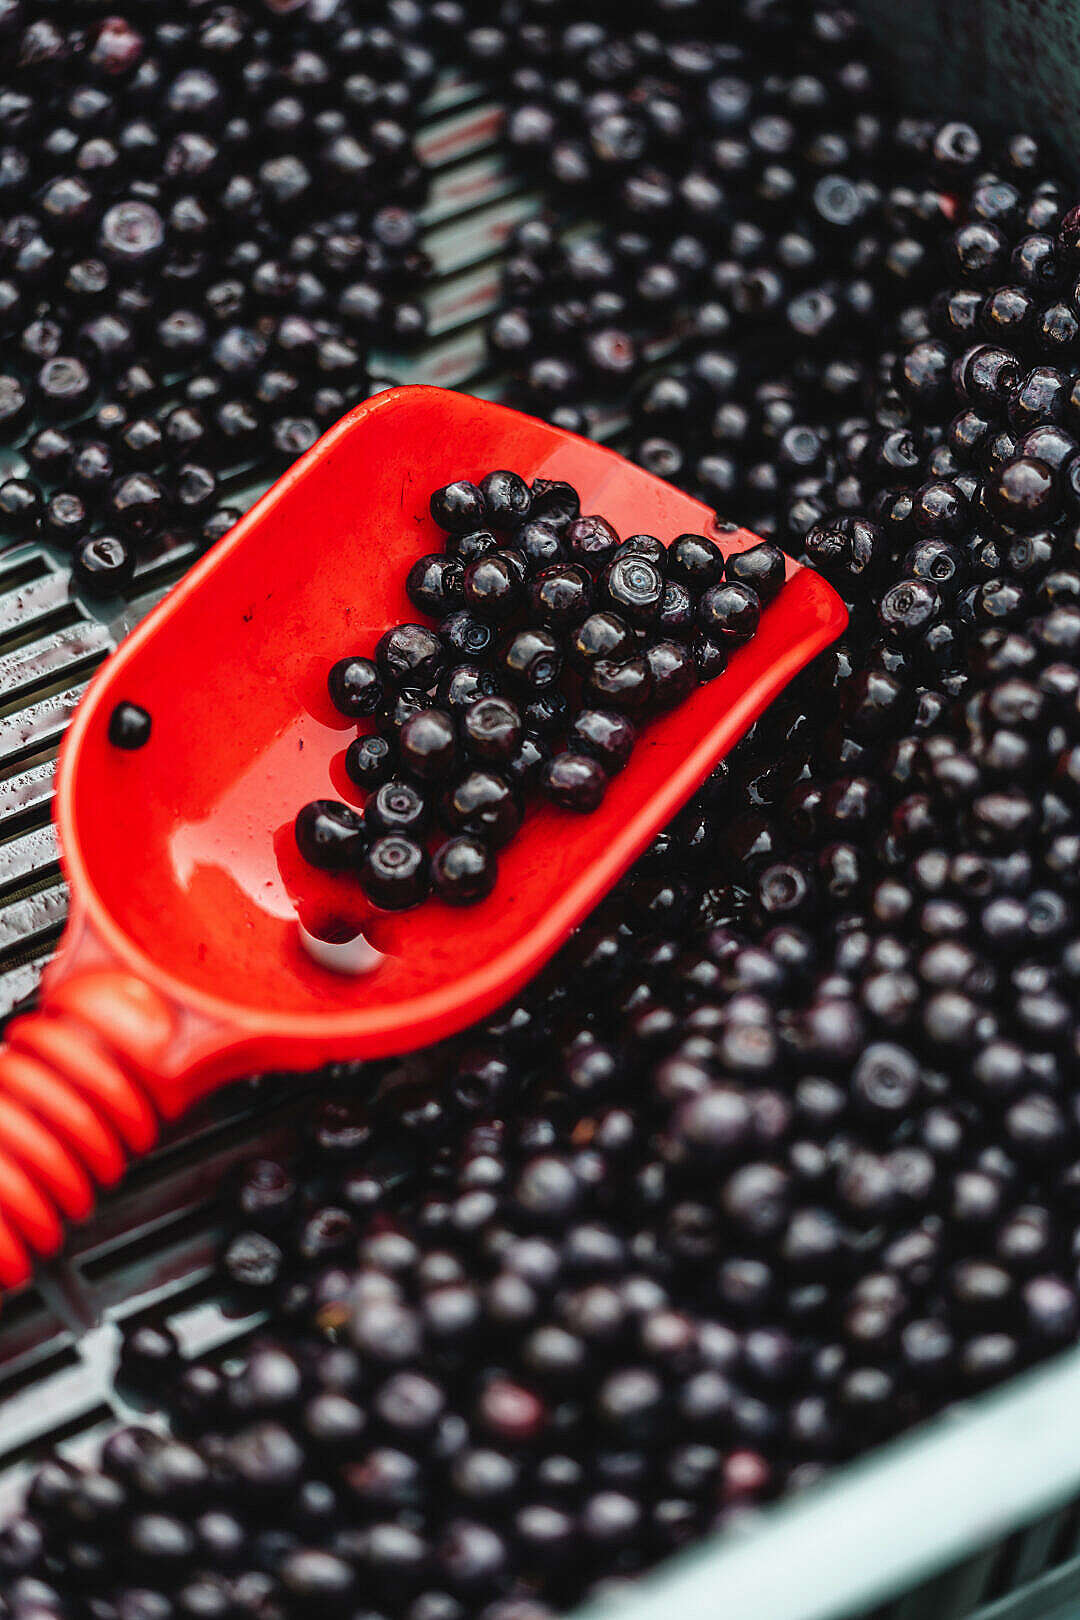 Download Heap of Blueberries in The Shovel FREE Stock Photo